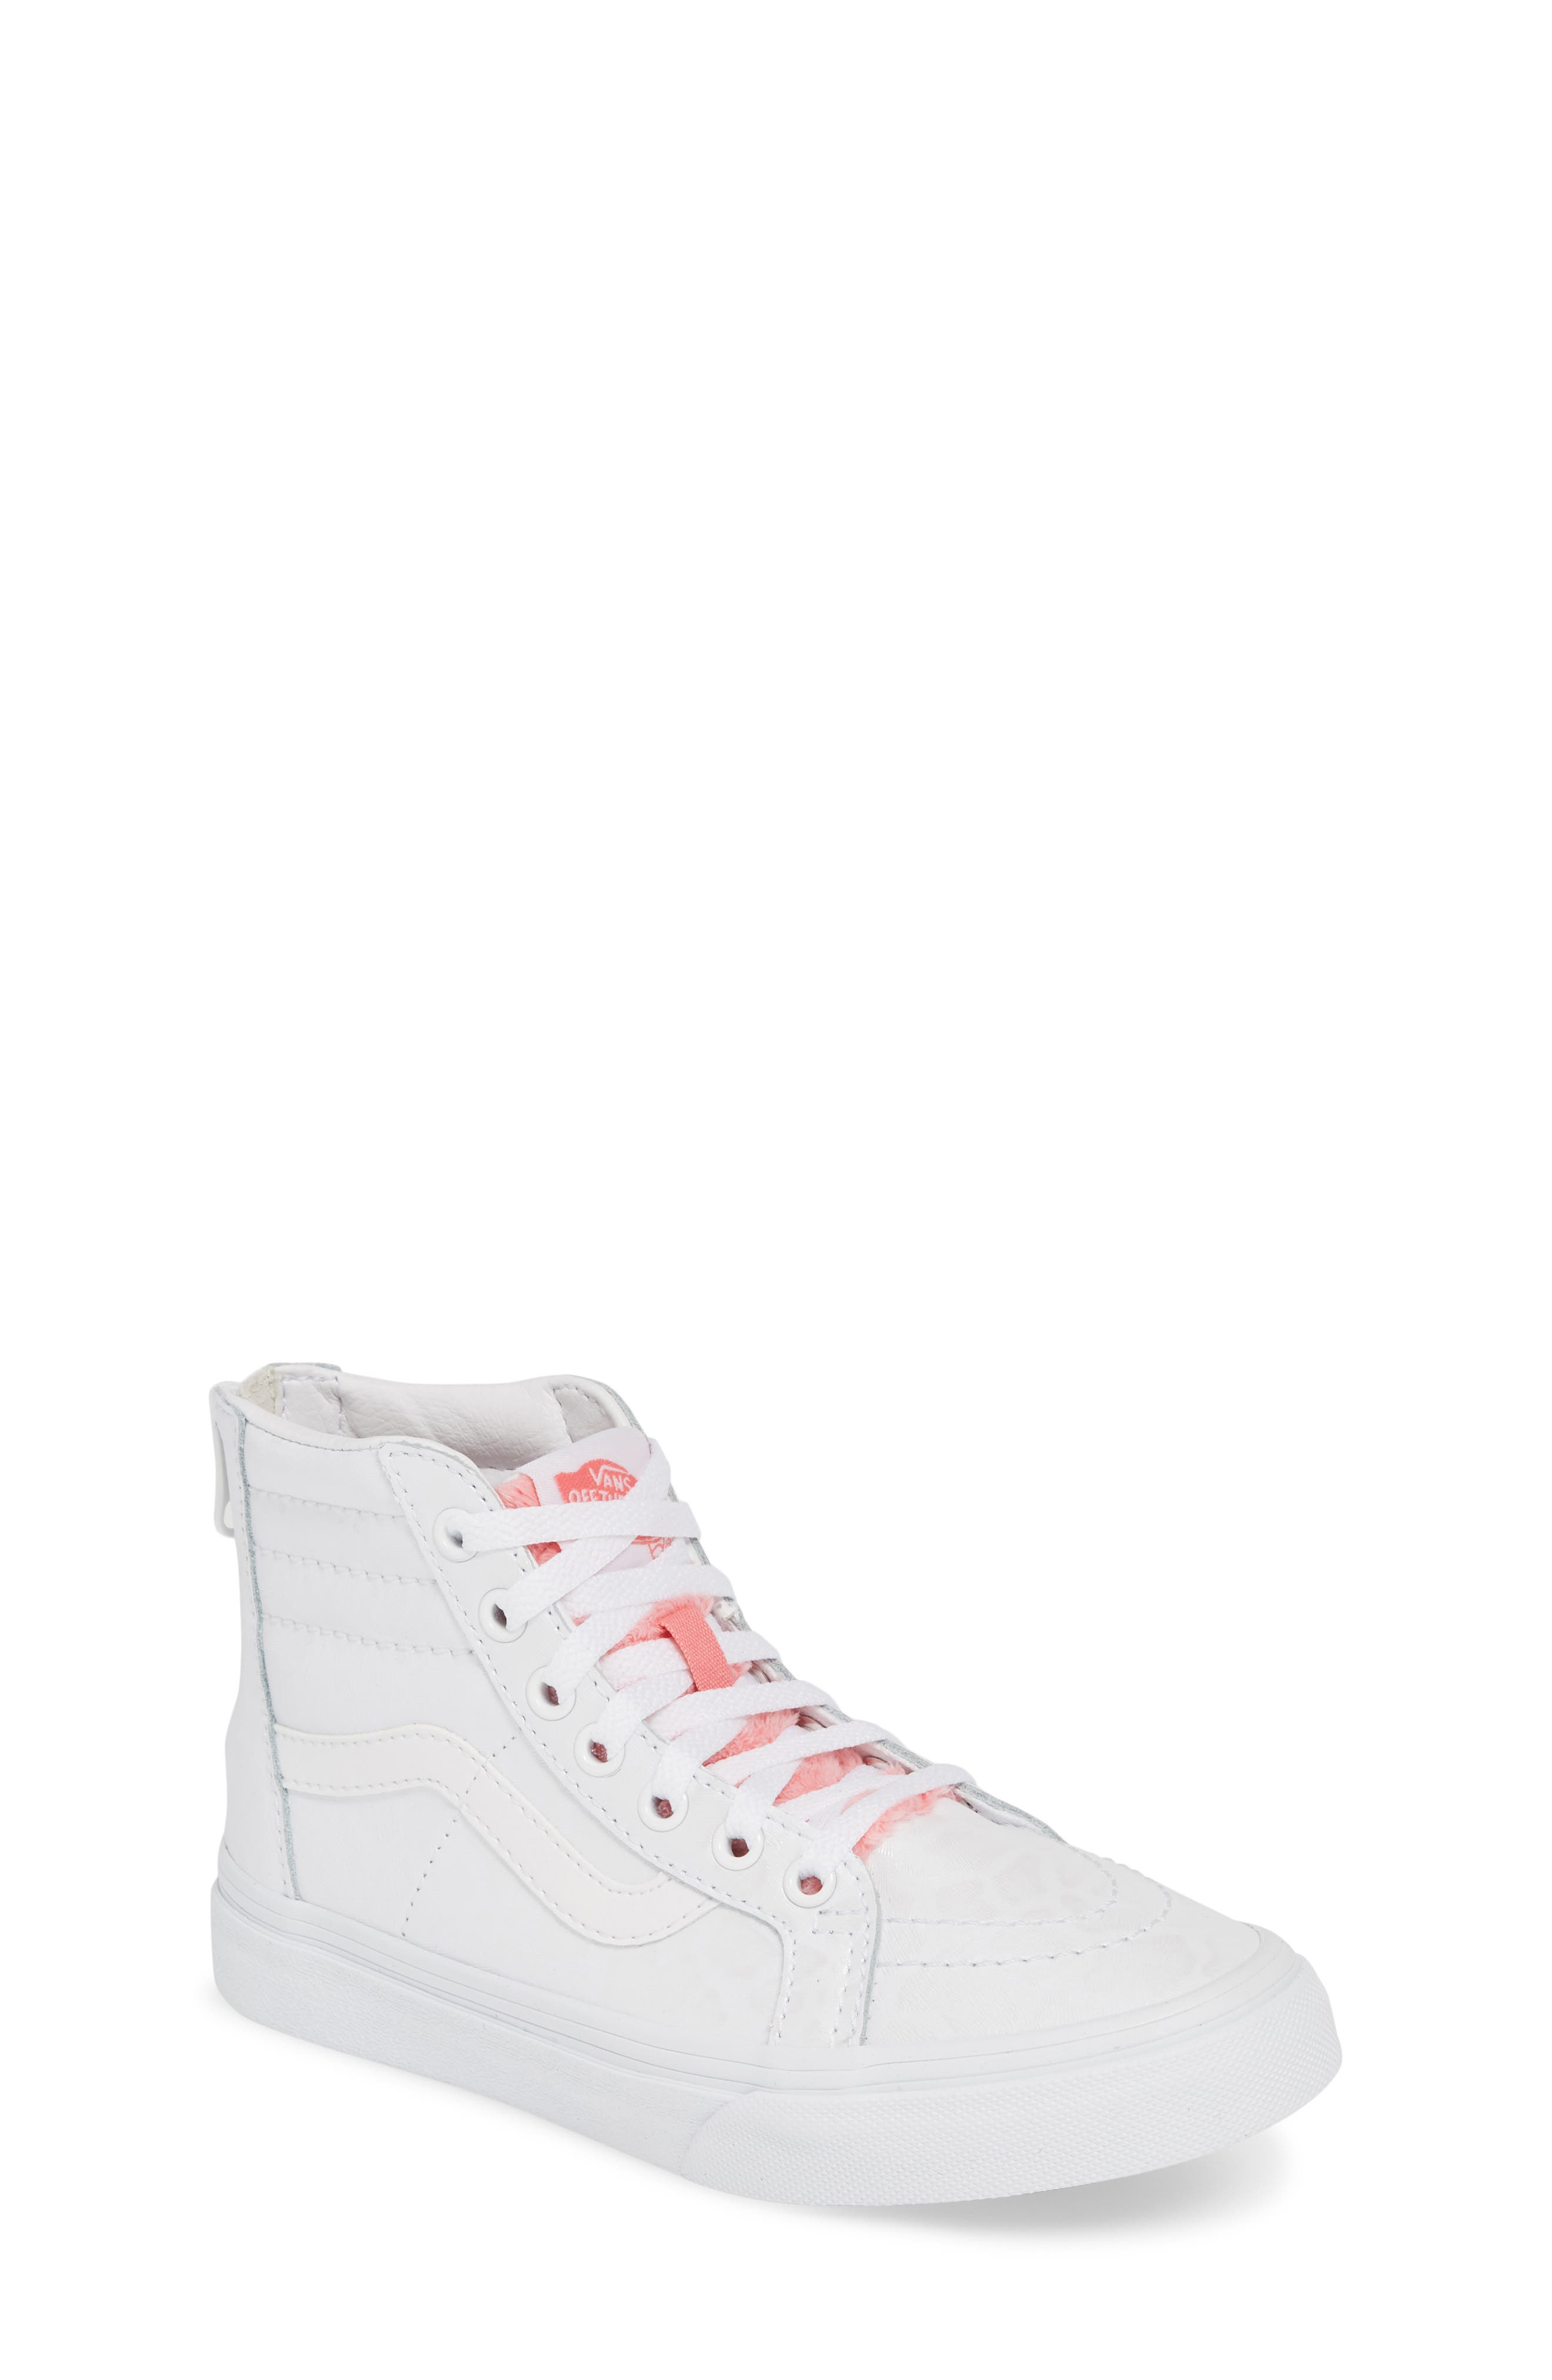 3da7026a430 Vans - Girls Sneakers   Athletic Shoes - Kids  Shoes and Boots to ...